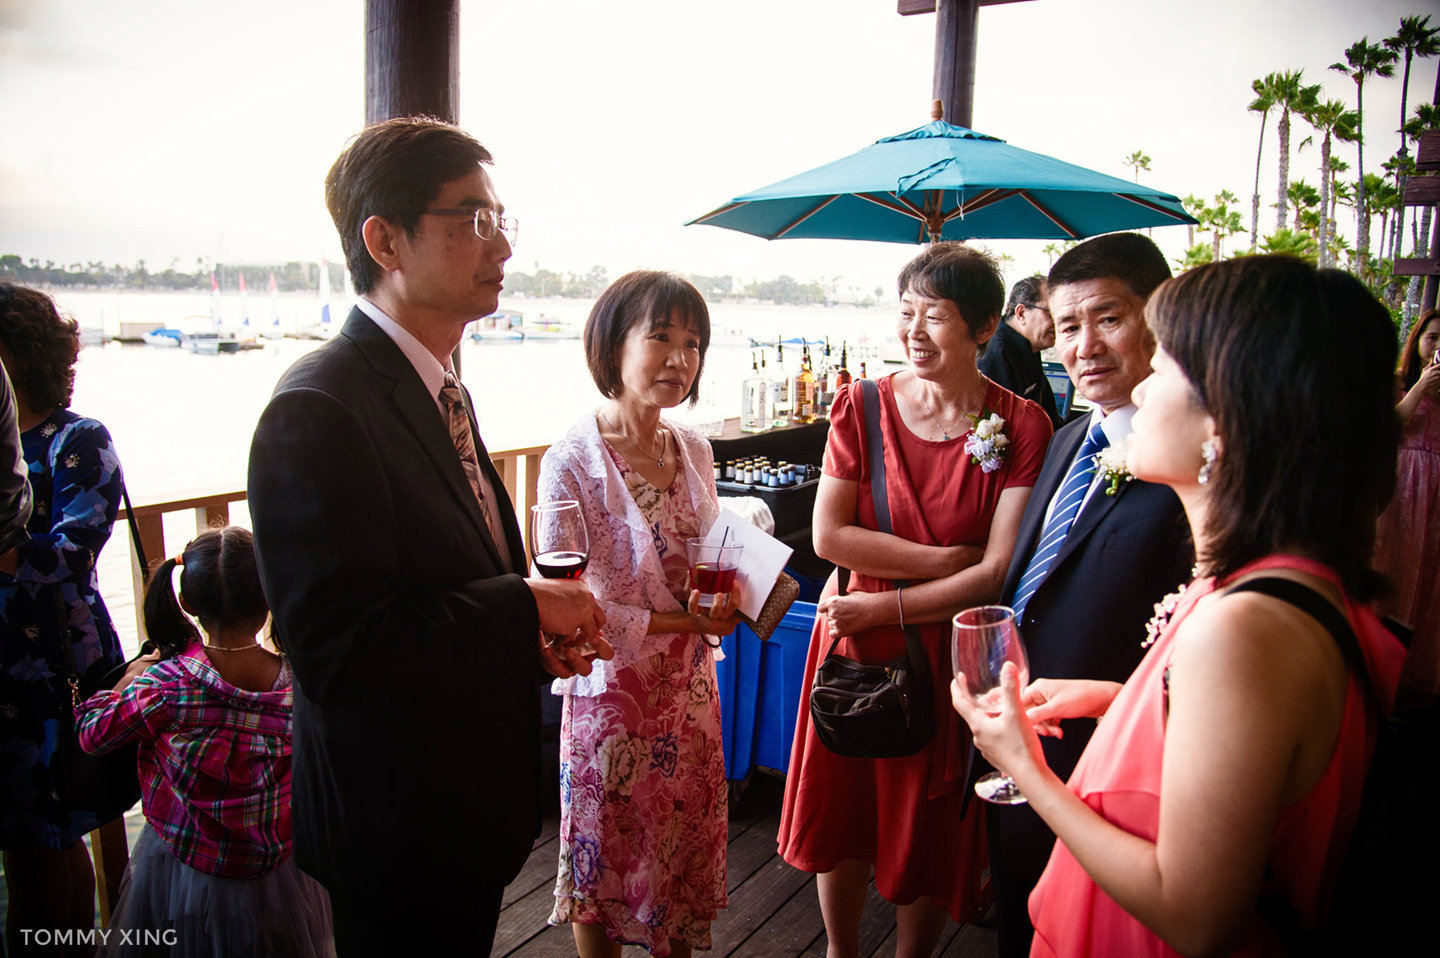 Paradise Point Resort Wedding Xiaolu & Bin San Diego 圣地亚哥婚礼摄影跟拍 Tommy Xing Photography 洛杉矶婚礼婚纱照摄影师 205.jpg